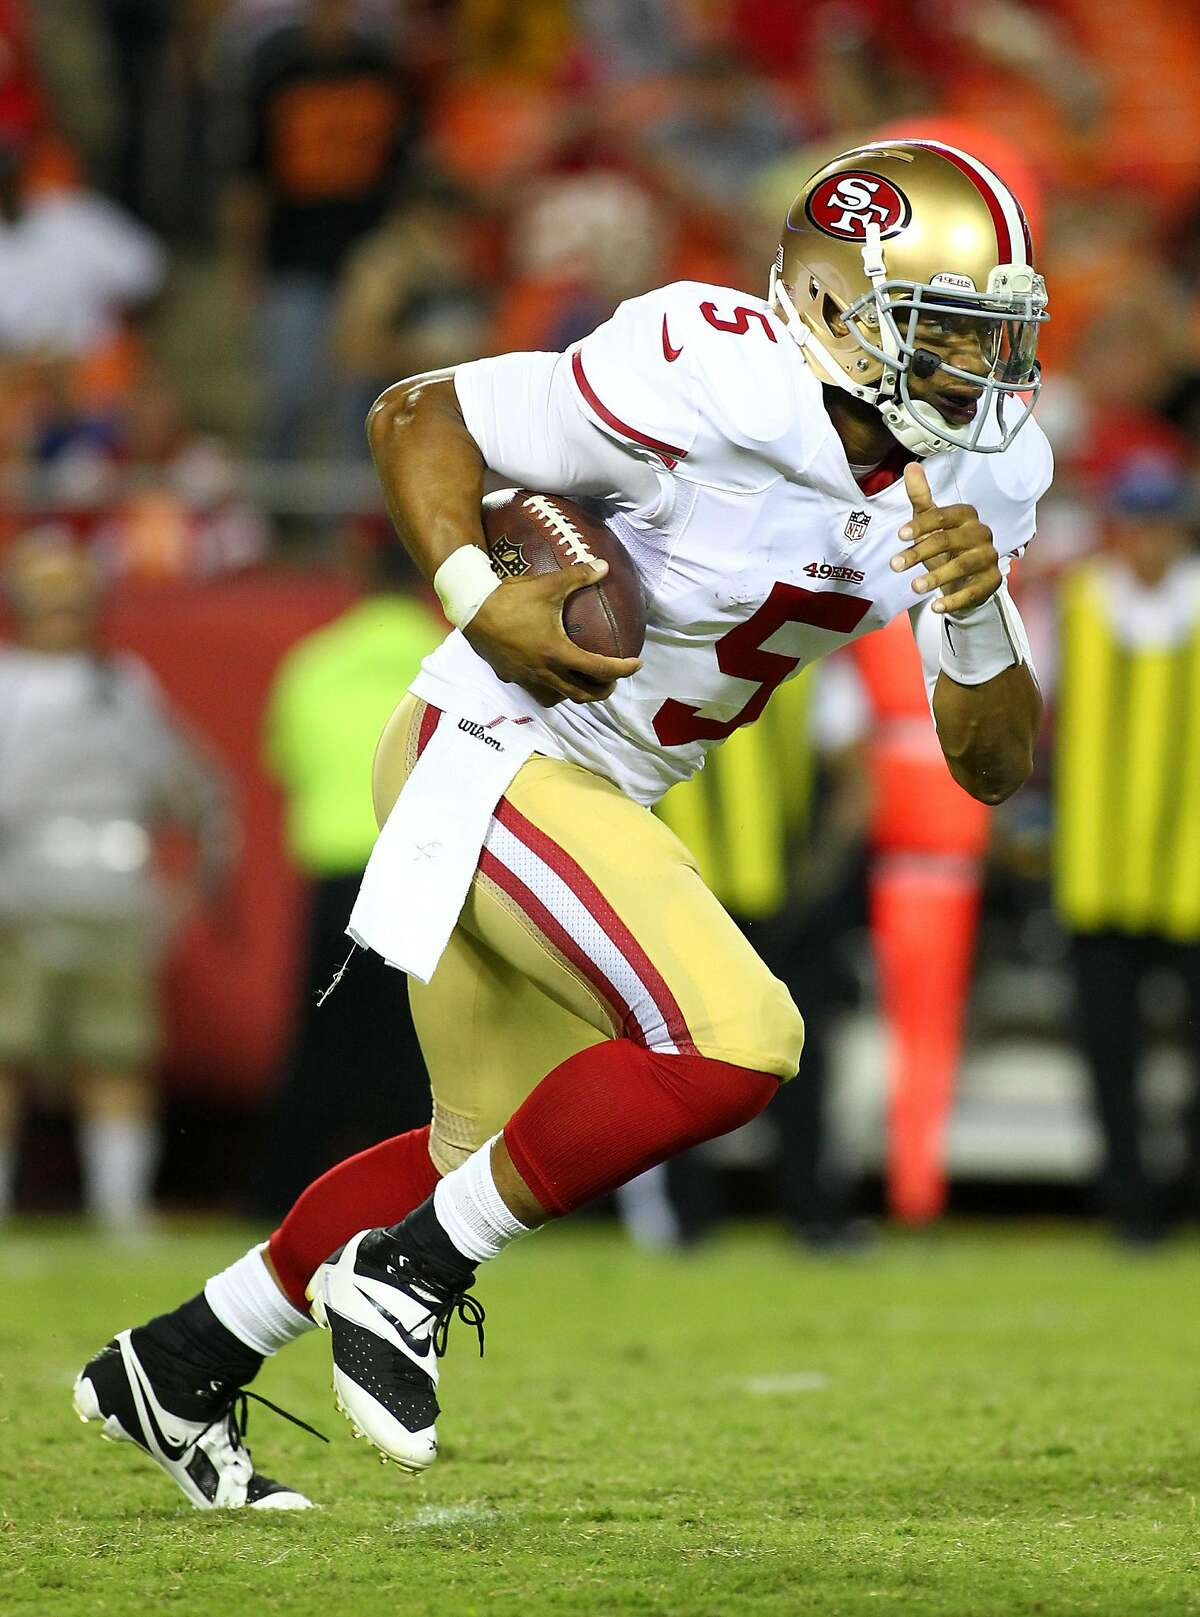 """B.J. Daniels, quarterback Salt Lake Stallions, second round The 49ers drafted B.J. Daniels in the seventh round of the 2013 NFL draft. He didn't last long, as he was waived before the season began. In fact, his entire NFL career was basically getting signed by a team and then waived or released by it. He threw a total of two passes. Fun fact: B.J.'s first name is Bruce. His middle name is Edward. So where did the """"J"""" come from?"""